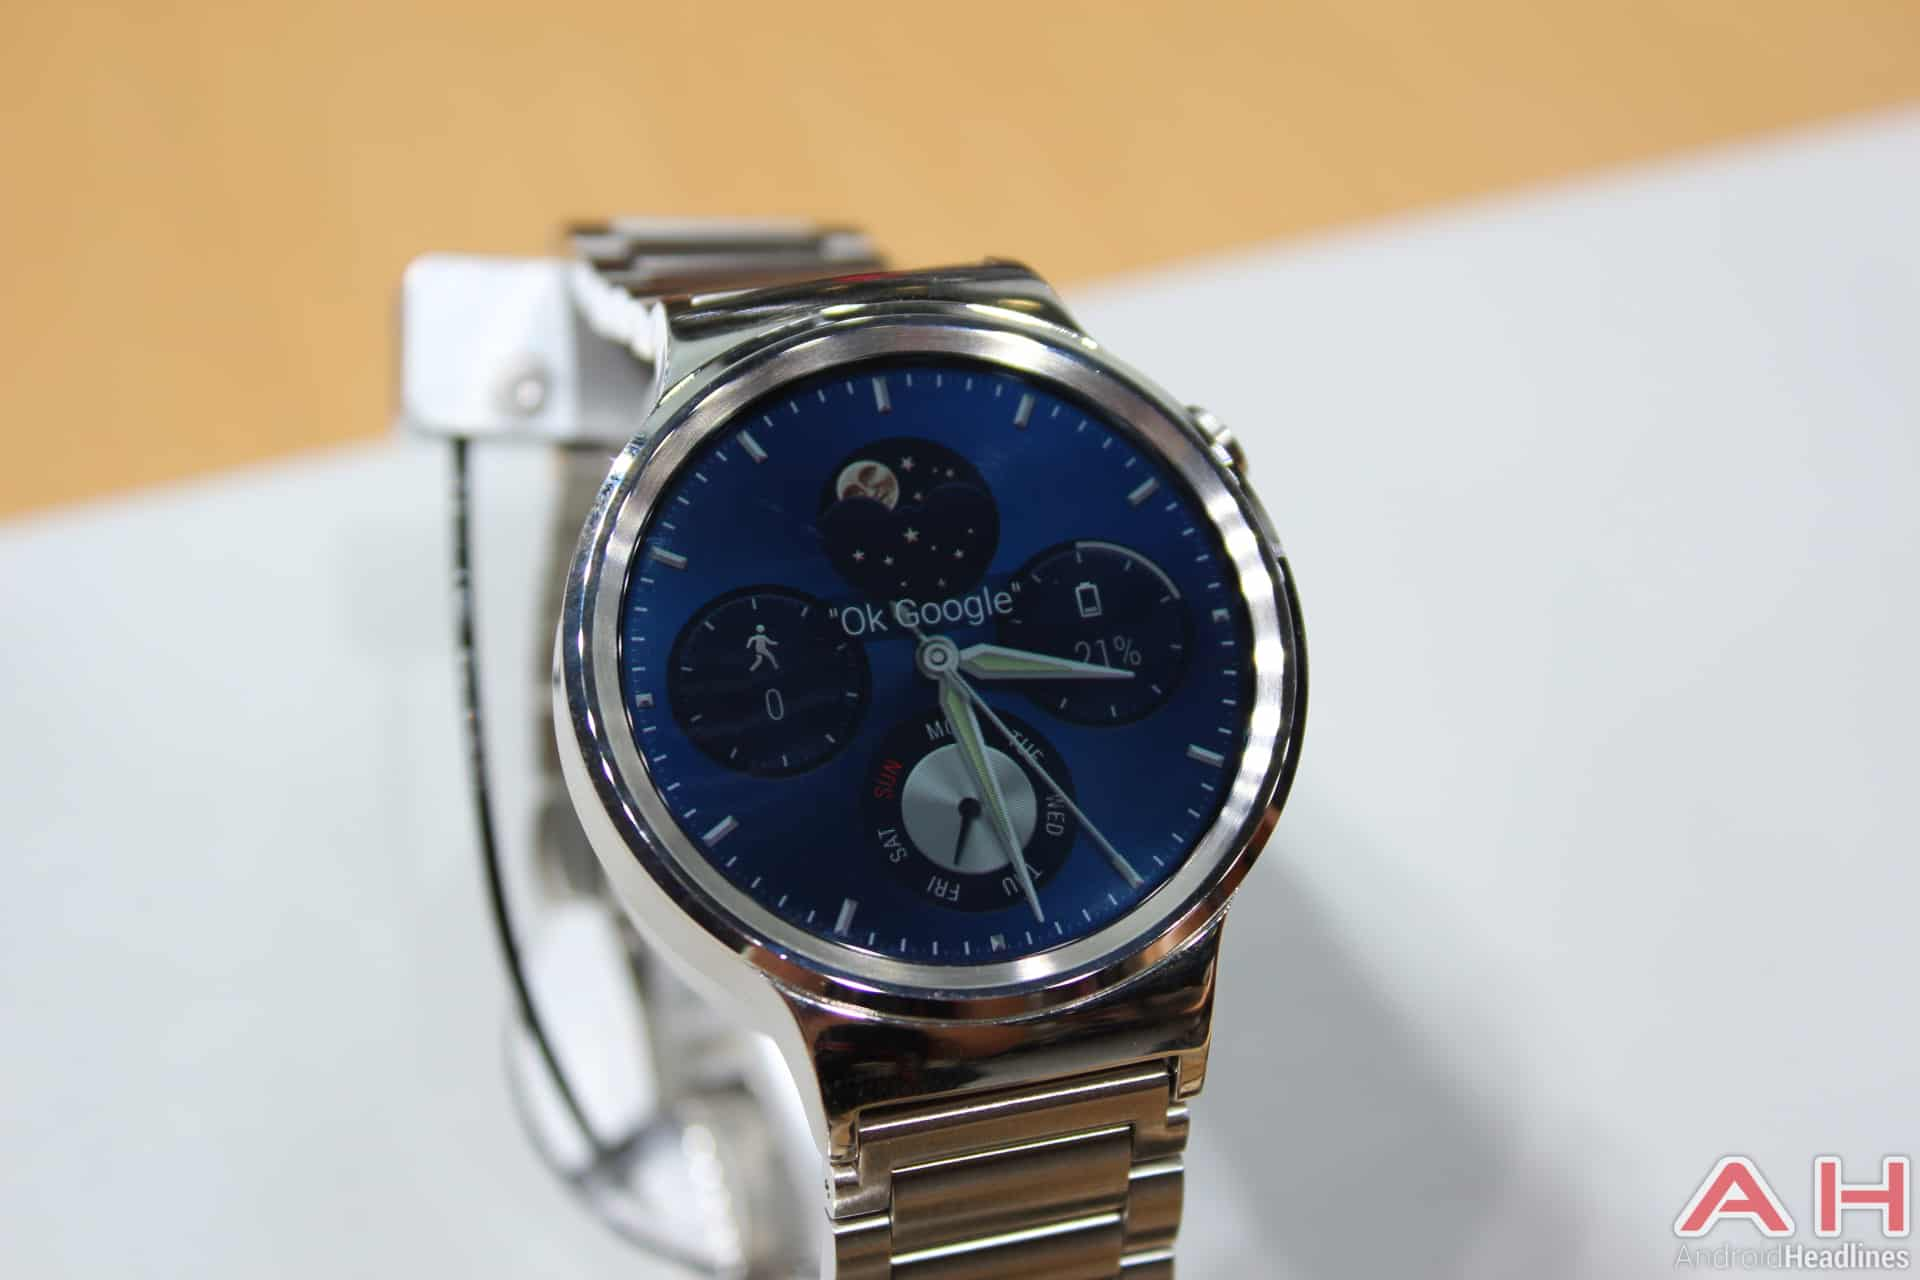 canada s google play store now selling huawei watch for $499